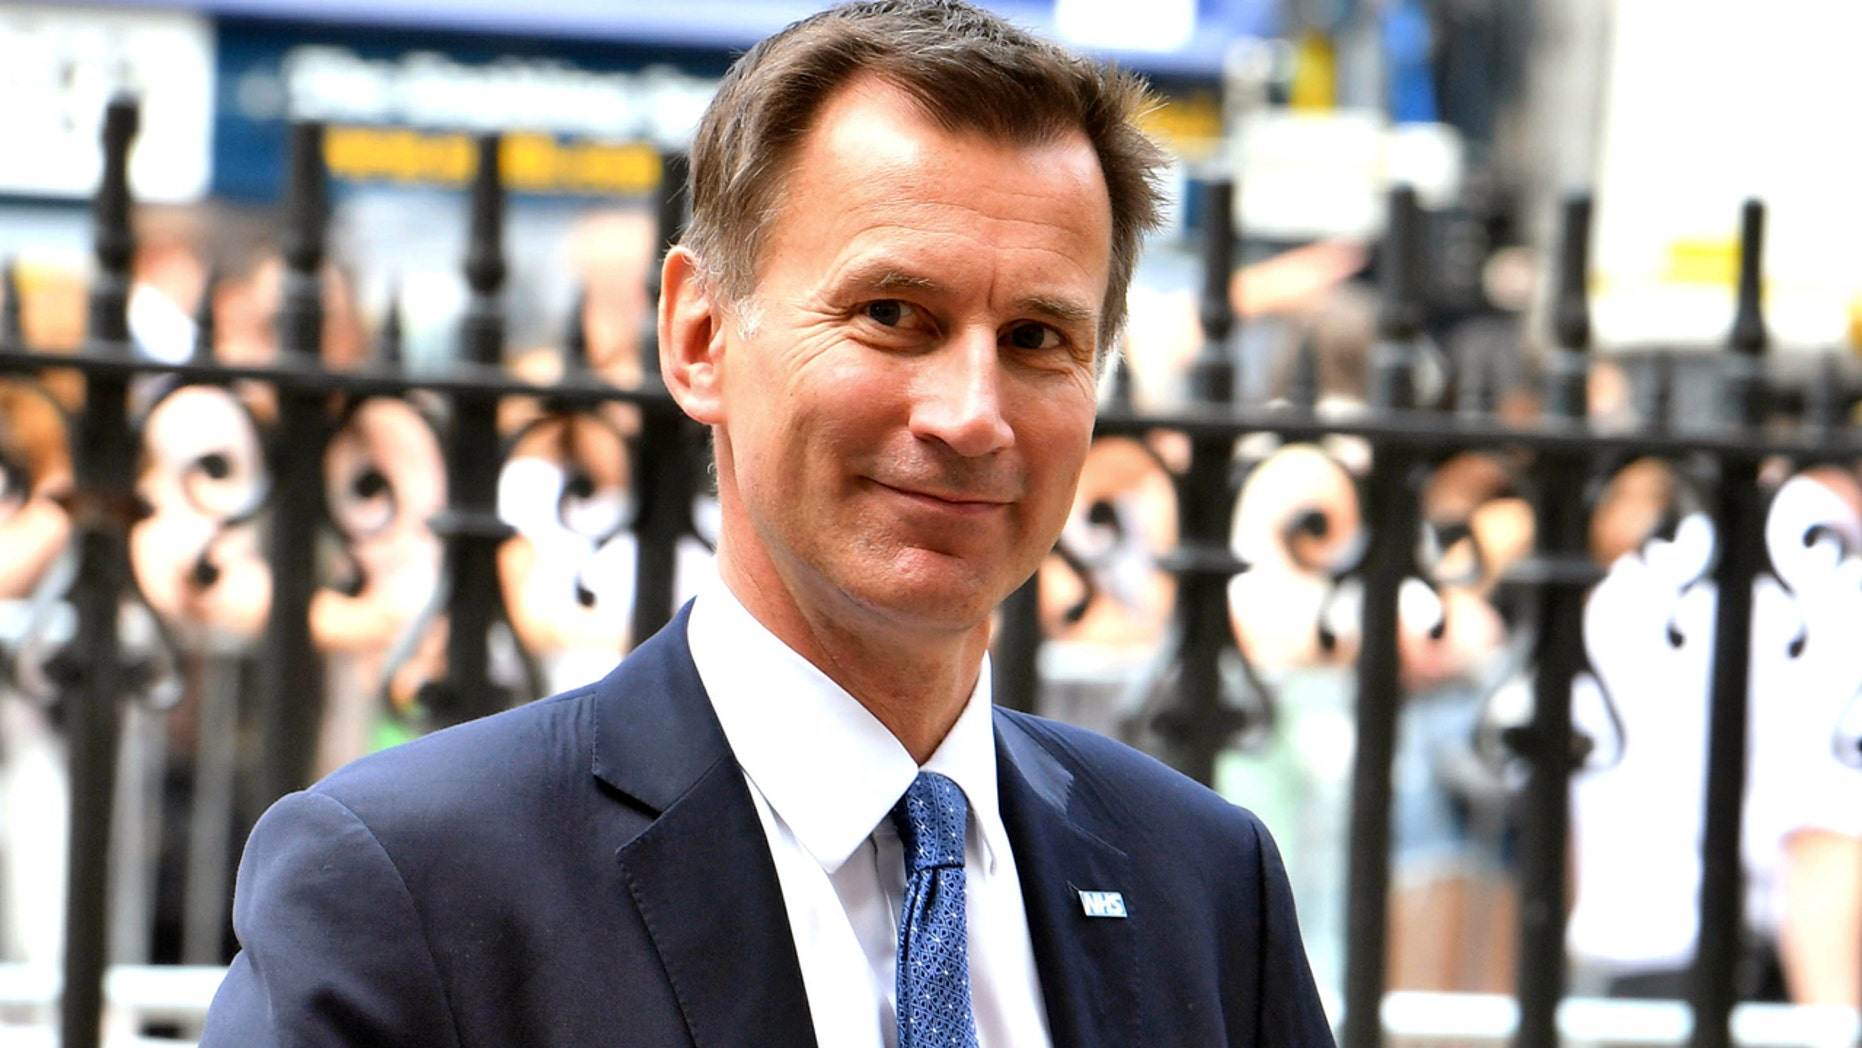 New British Foreign Secretary Jeremy Hunt supported the 'Remain' side of the 2016 UK referendum to leave the European Union.